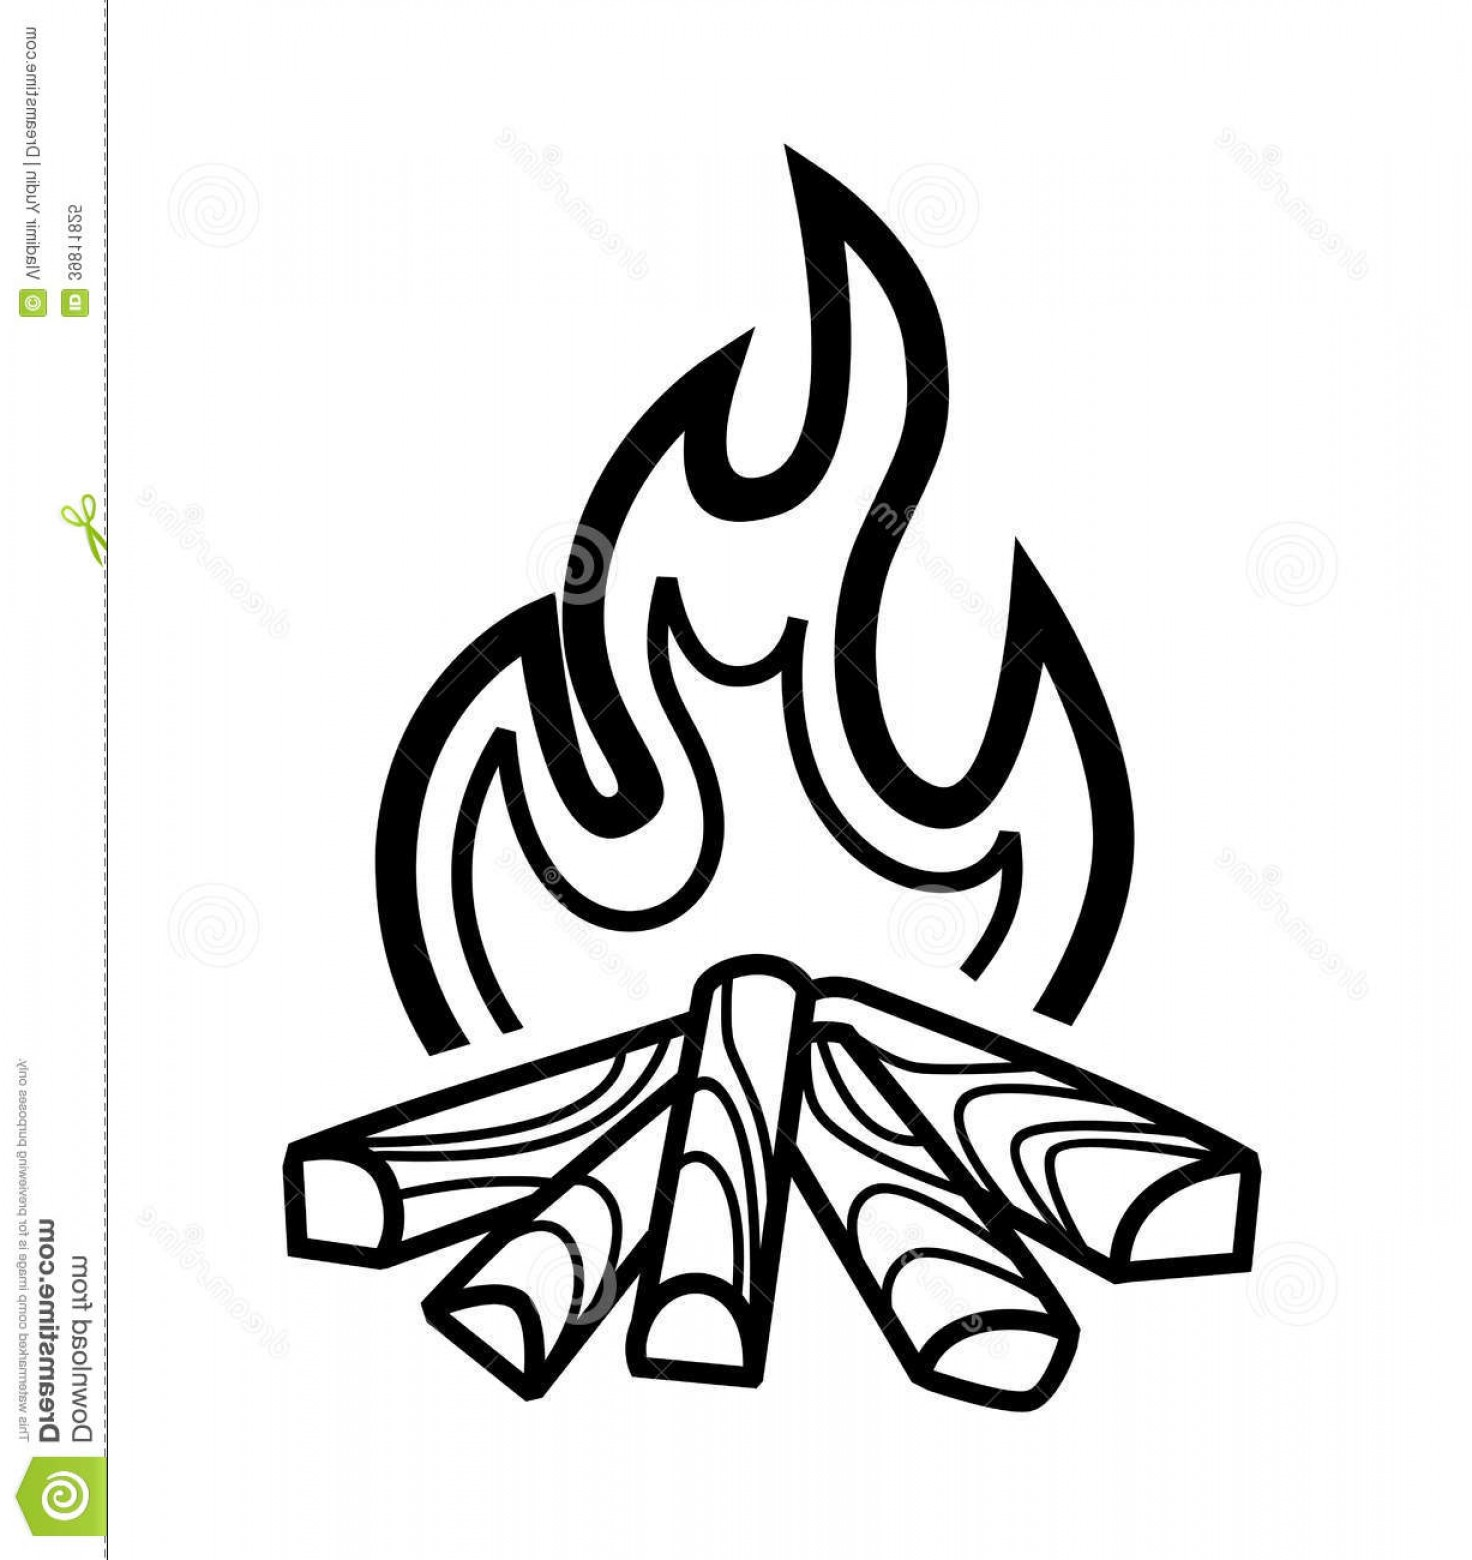 Royalty Free Stock Photo Campfire Icon Vector Black White Background.